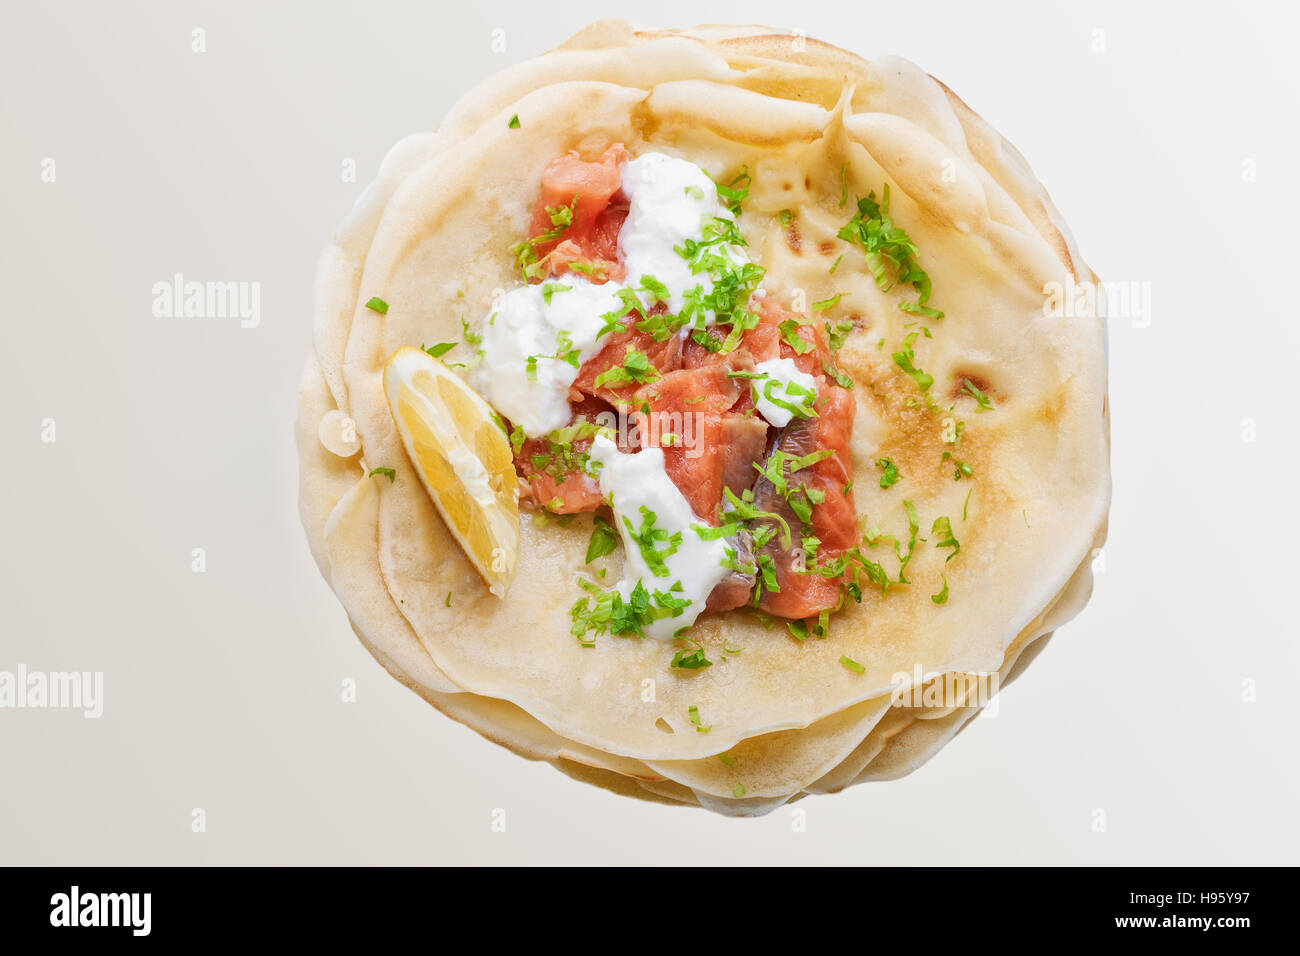 Crispy crepes with smoked salmon  and  cream cheese. - Stock Image